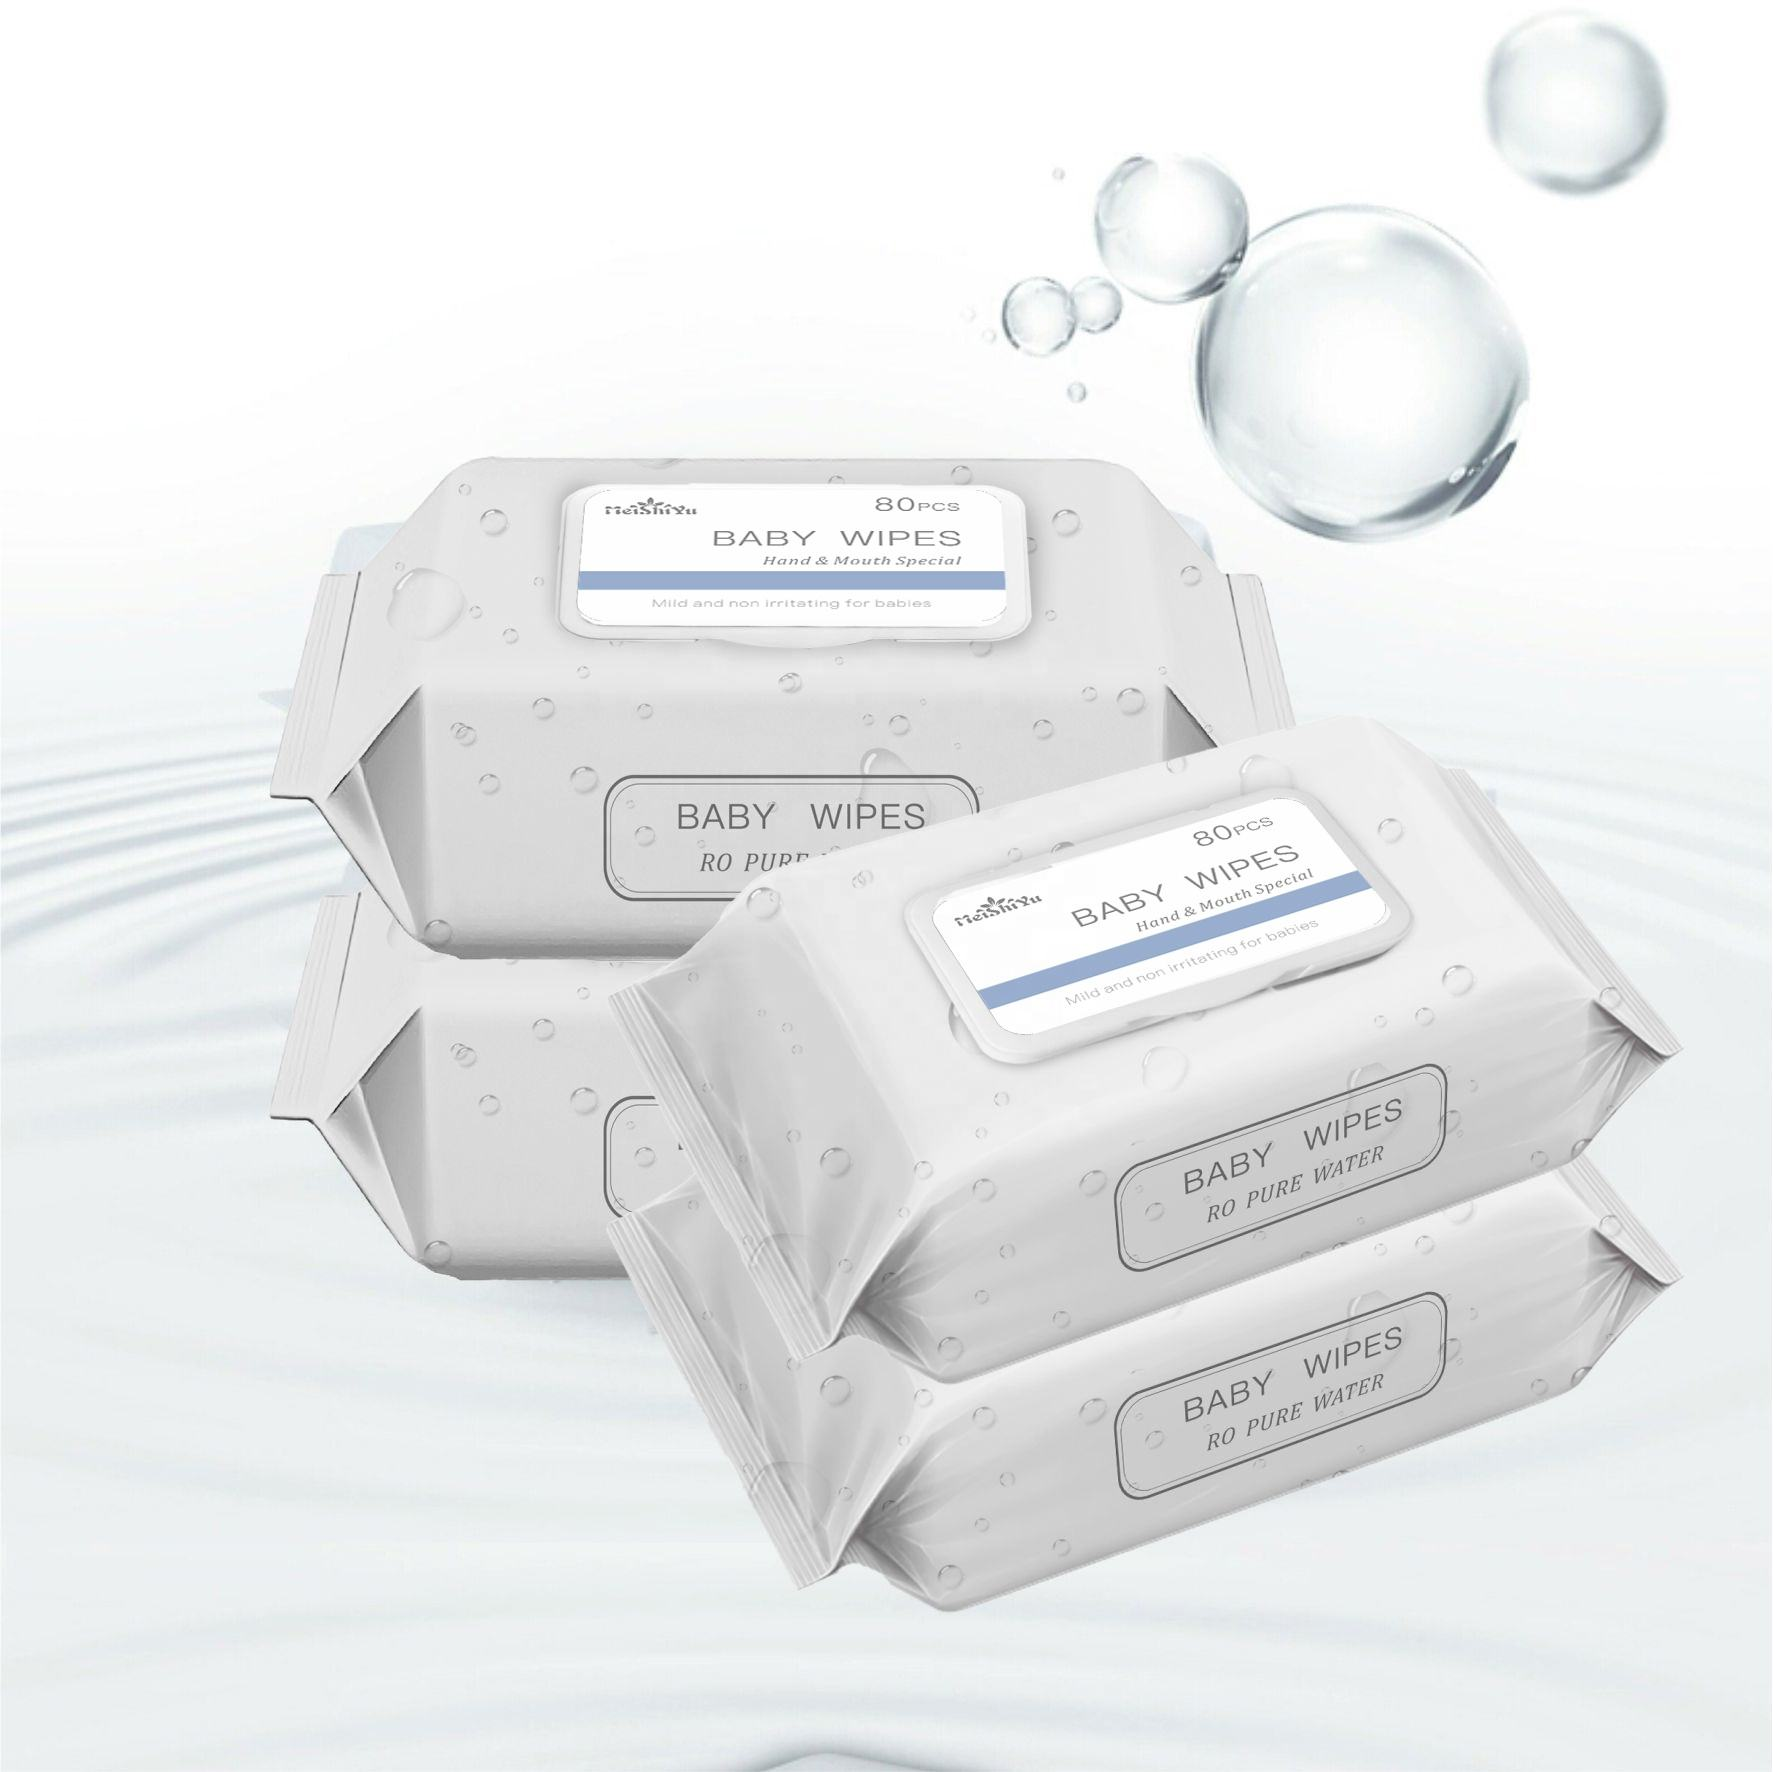 RO pure water baby wet wipes for hand and mouth special